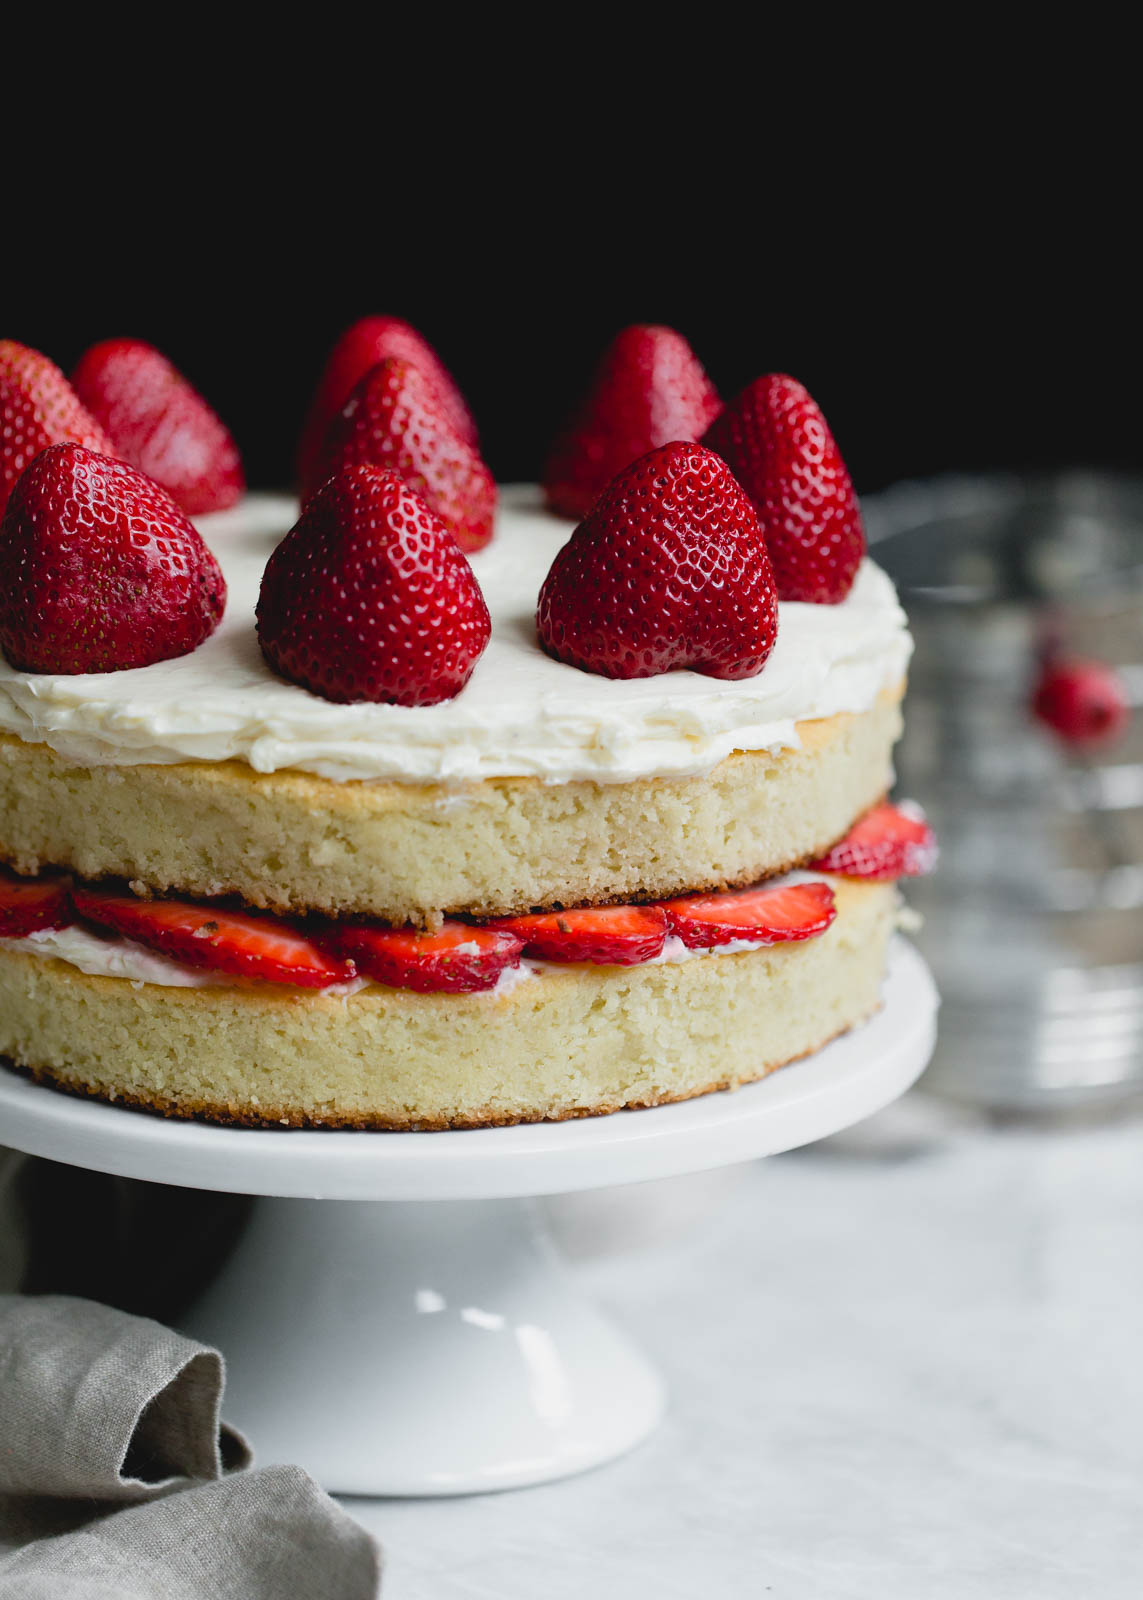 gluten free strawberry shortcake cake on a cake stand